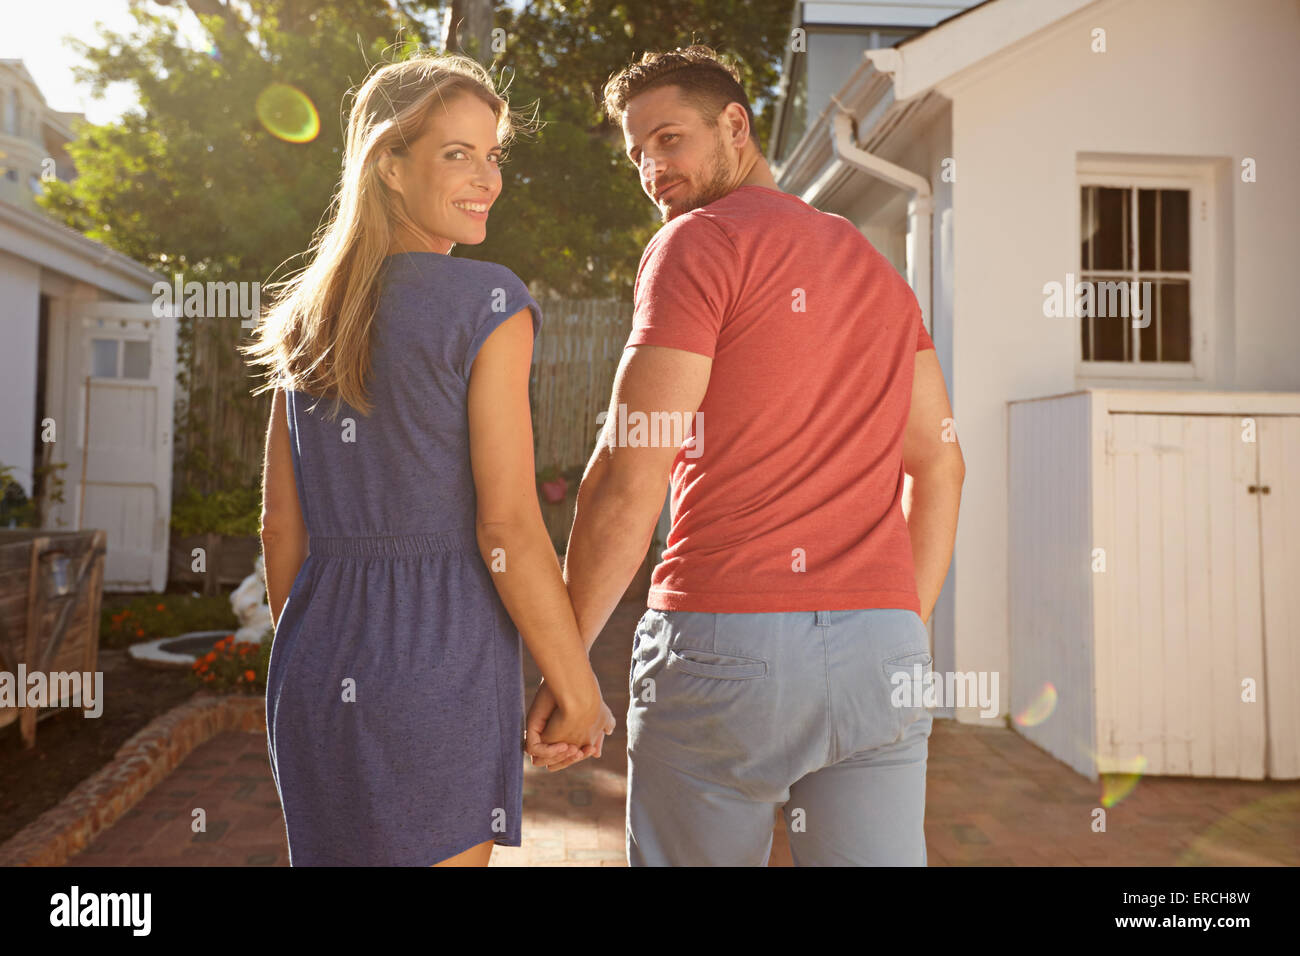 Shot of young couple in backyard on a bright sunny day. They are walking to their house hand in hand, looking over - Stock Image